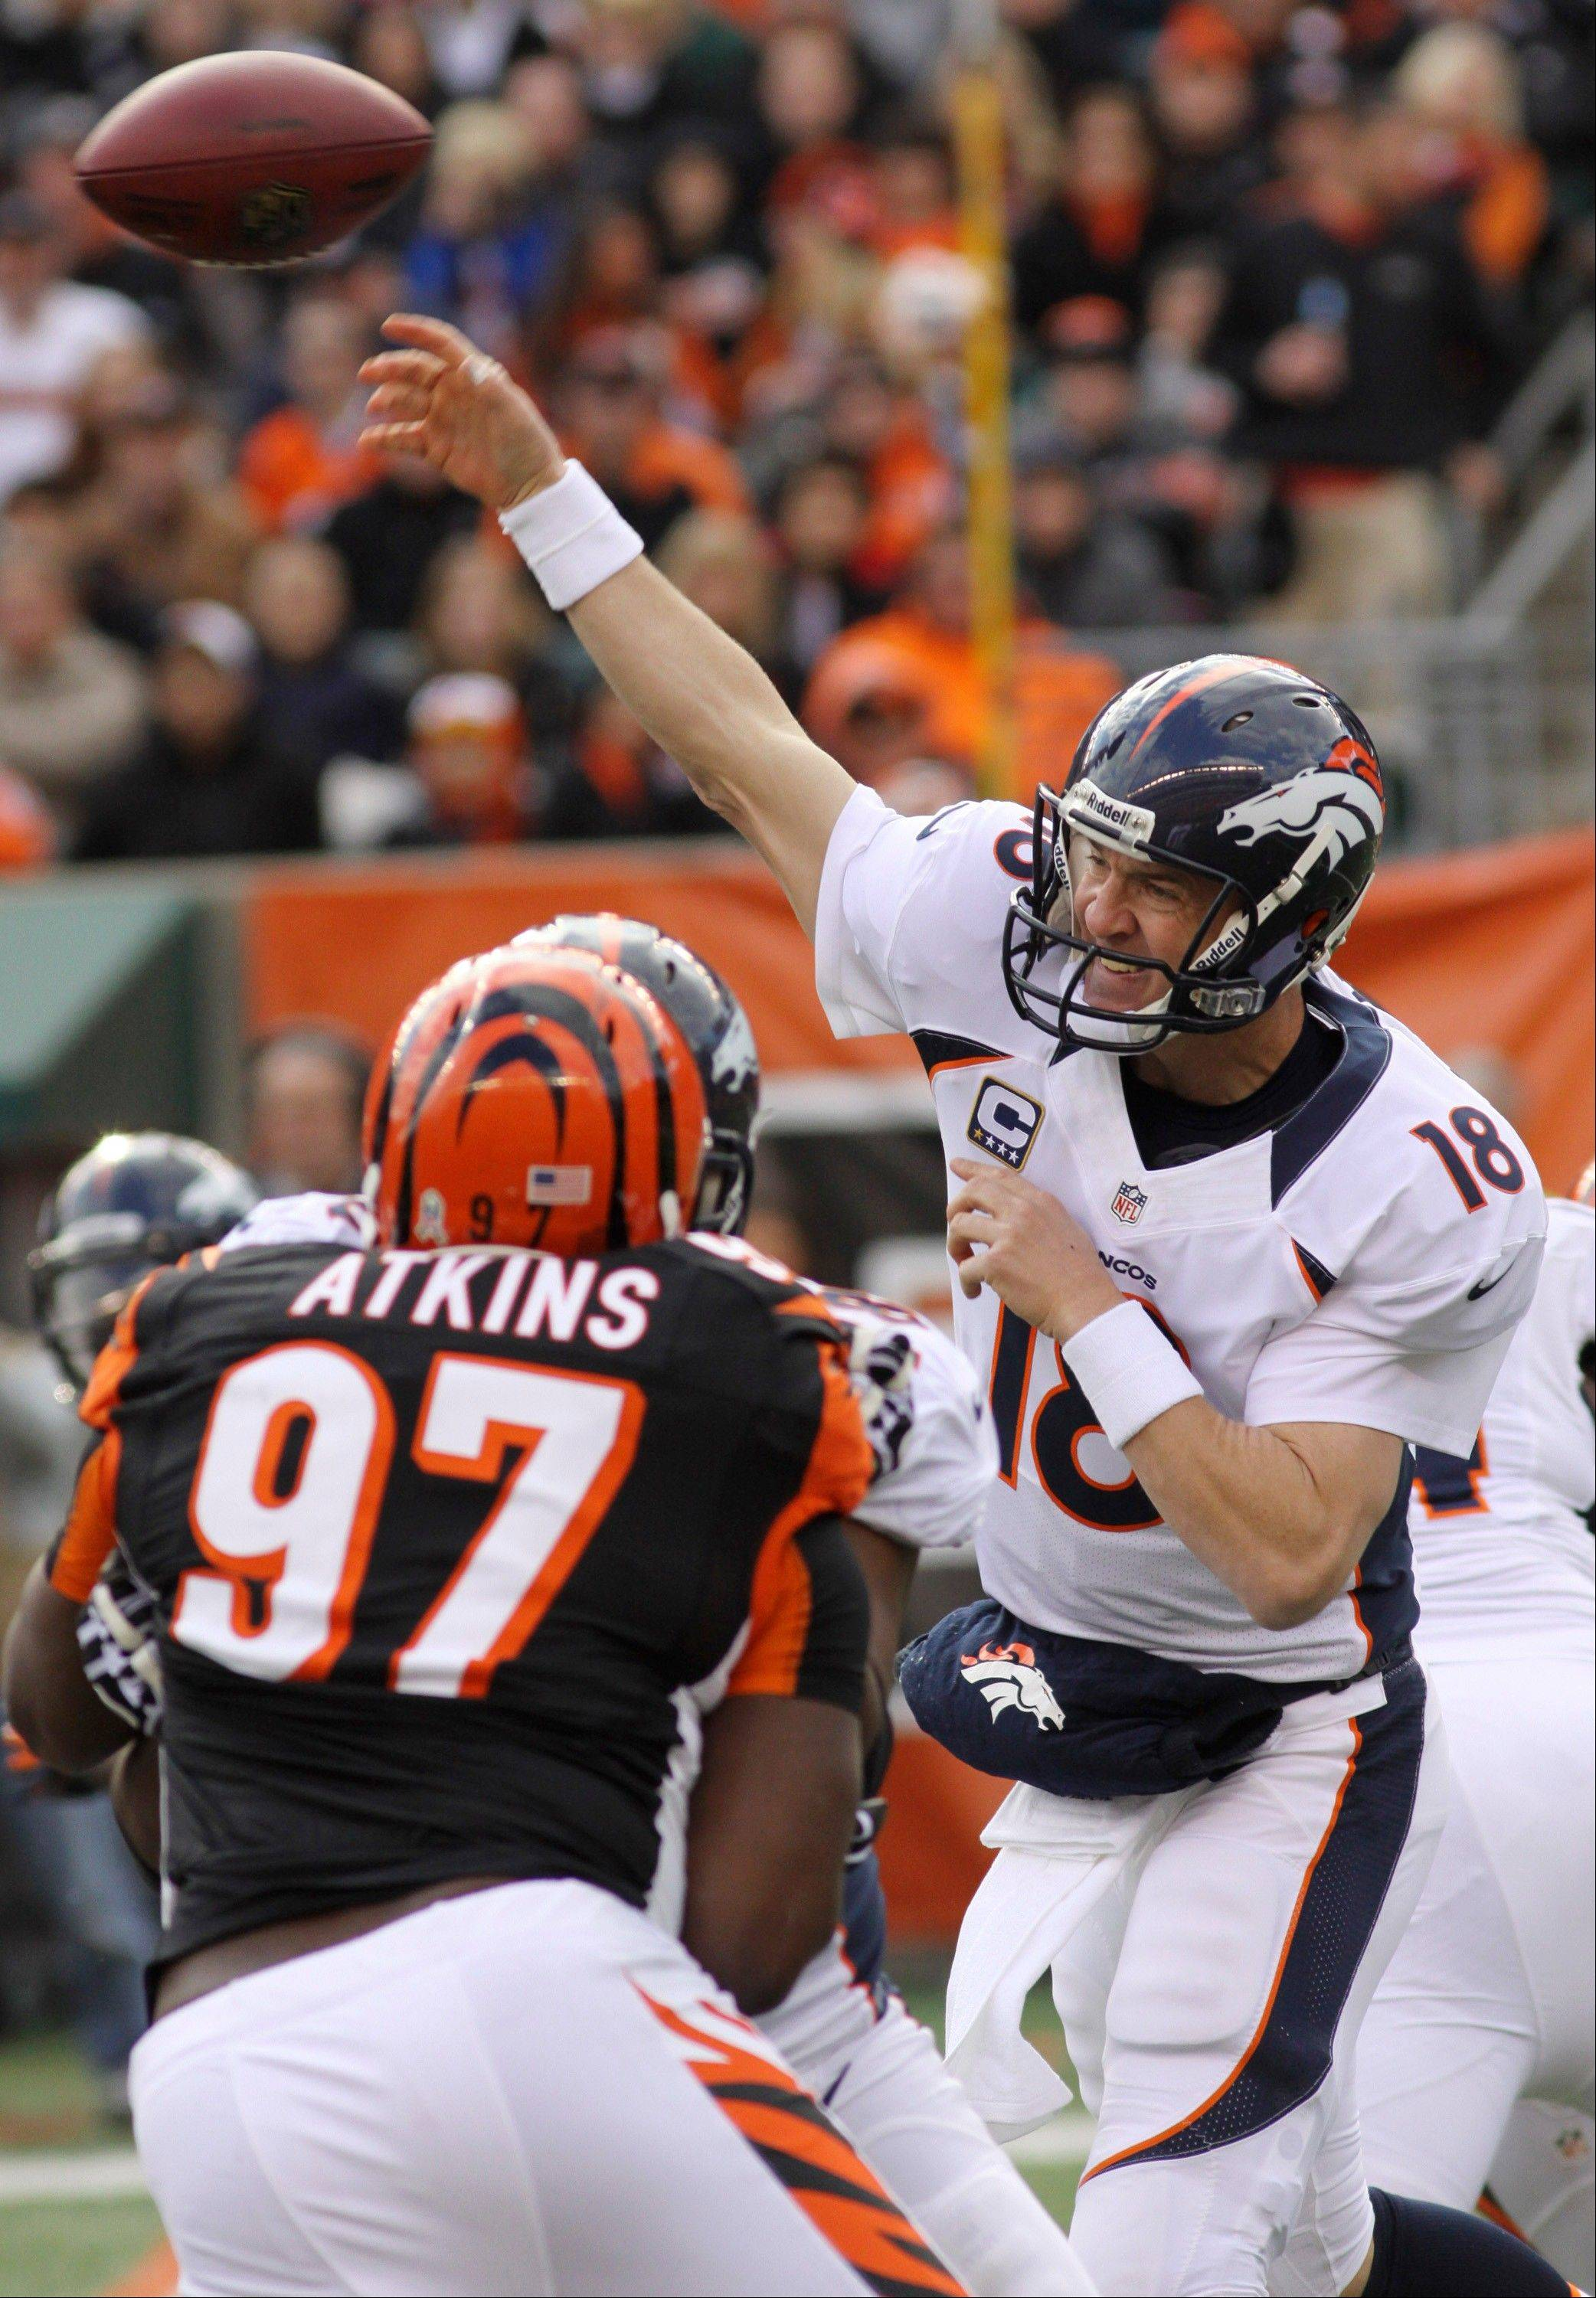 Denver Broncos quarterback Peyton Manning passes under pressure from Cincinnati Bengals defensive tackle Geno Atkins in the second half Sunday in Cincinnati.